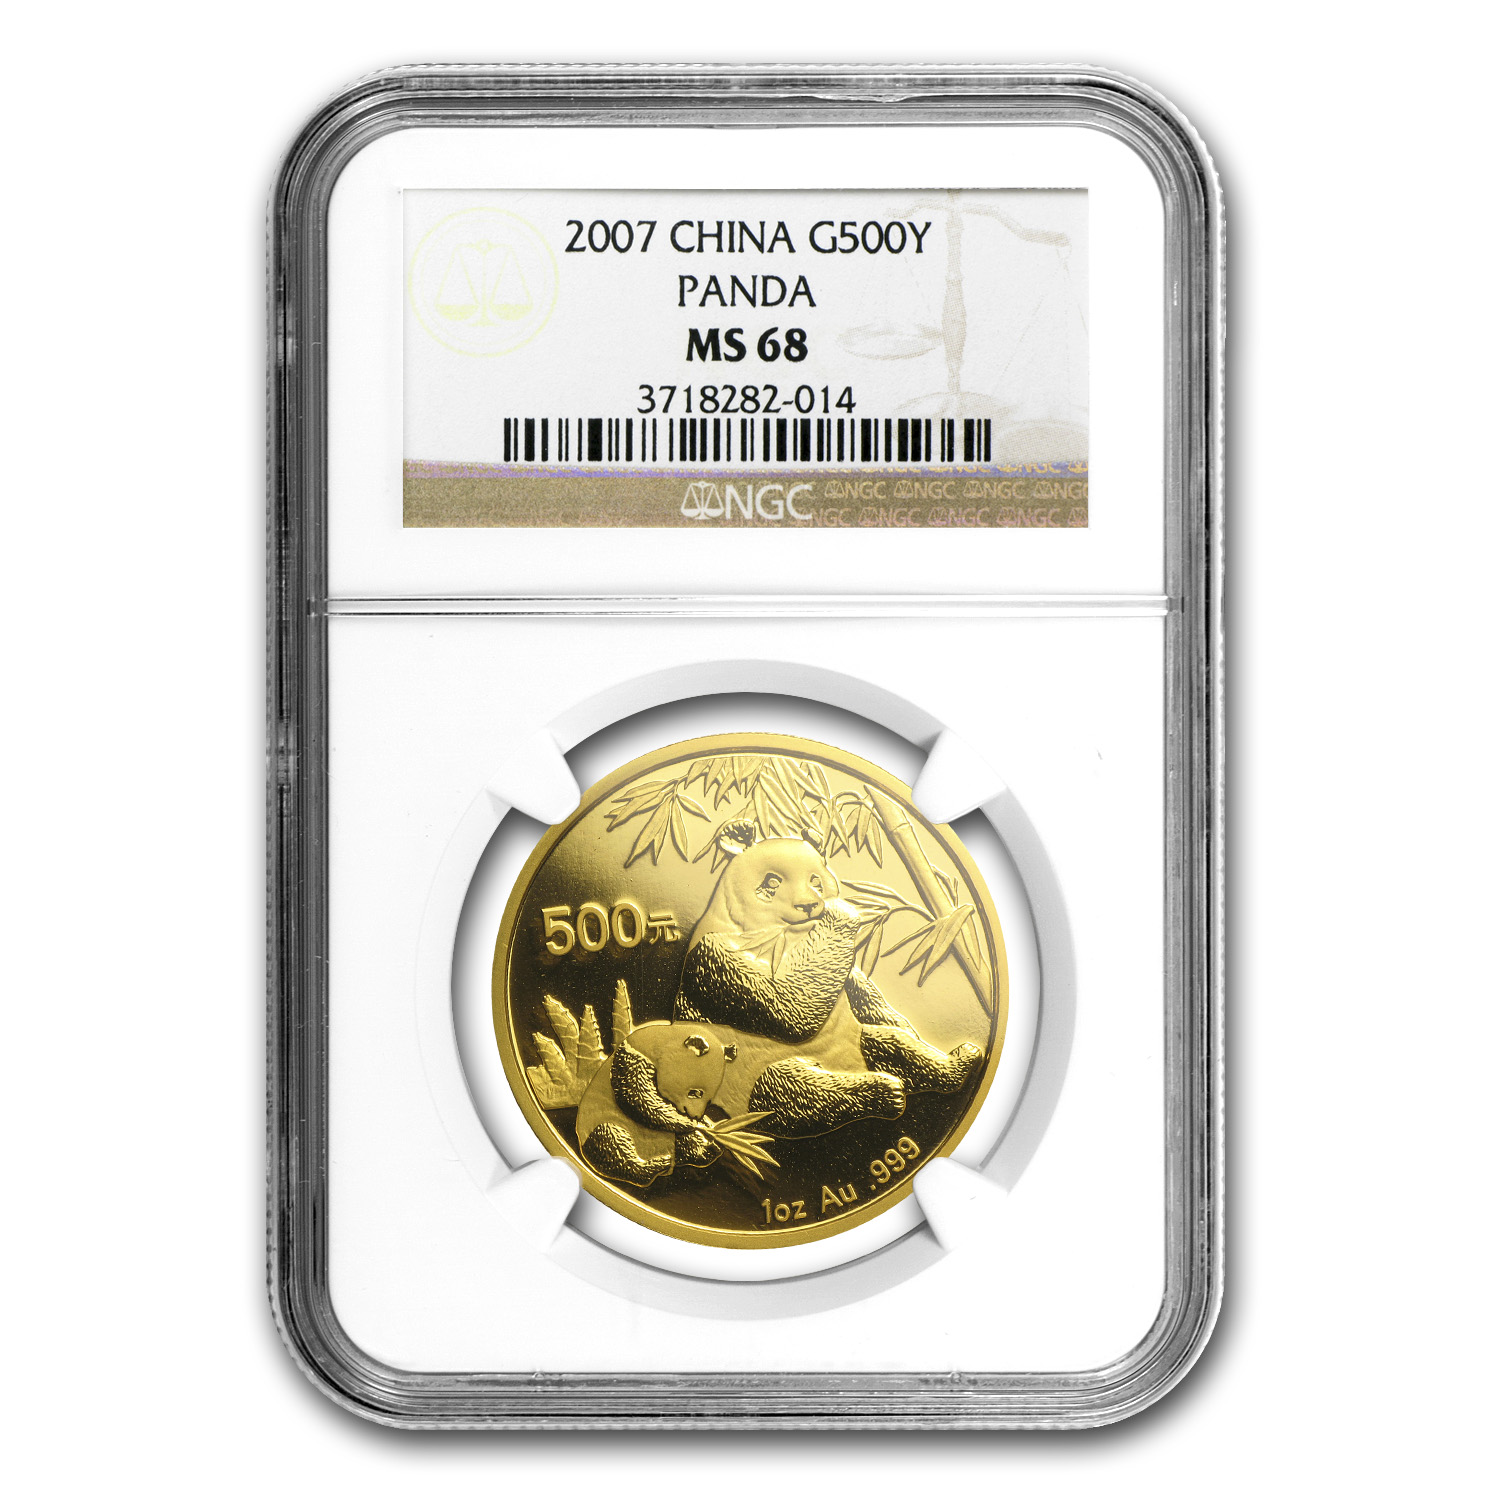 2007 China 1 oz Gold Panda MS-68 NGC